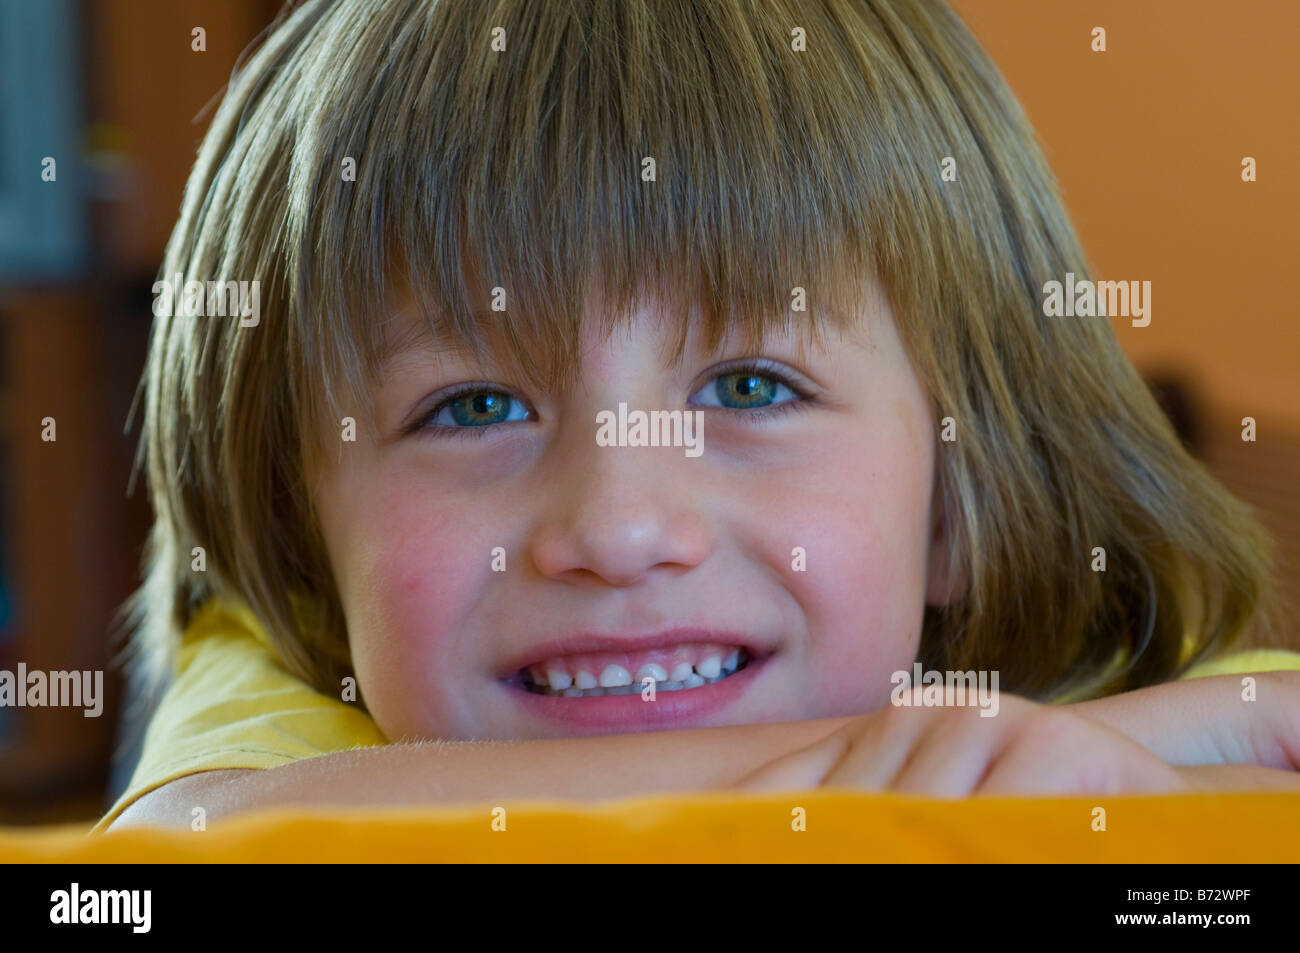 Smiling bright eyed 5 year old boy with long hair Stock Photo - smiling-bright-eyed-5-year-old-boy-with-long-hair-B72WPF